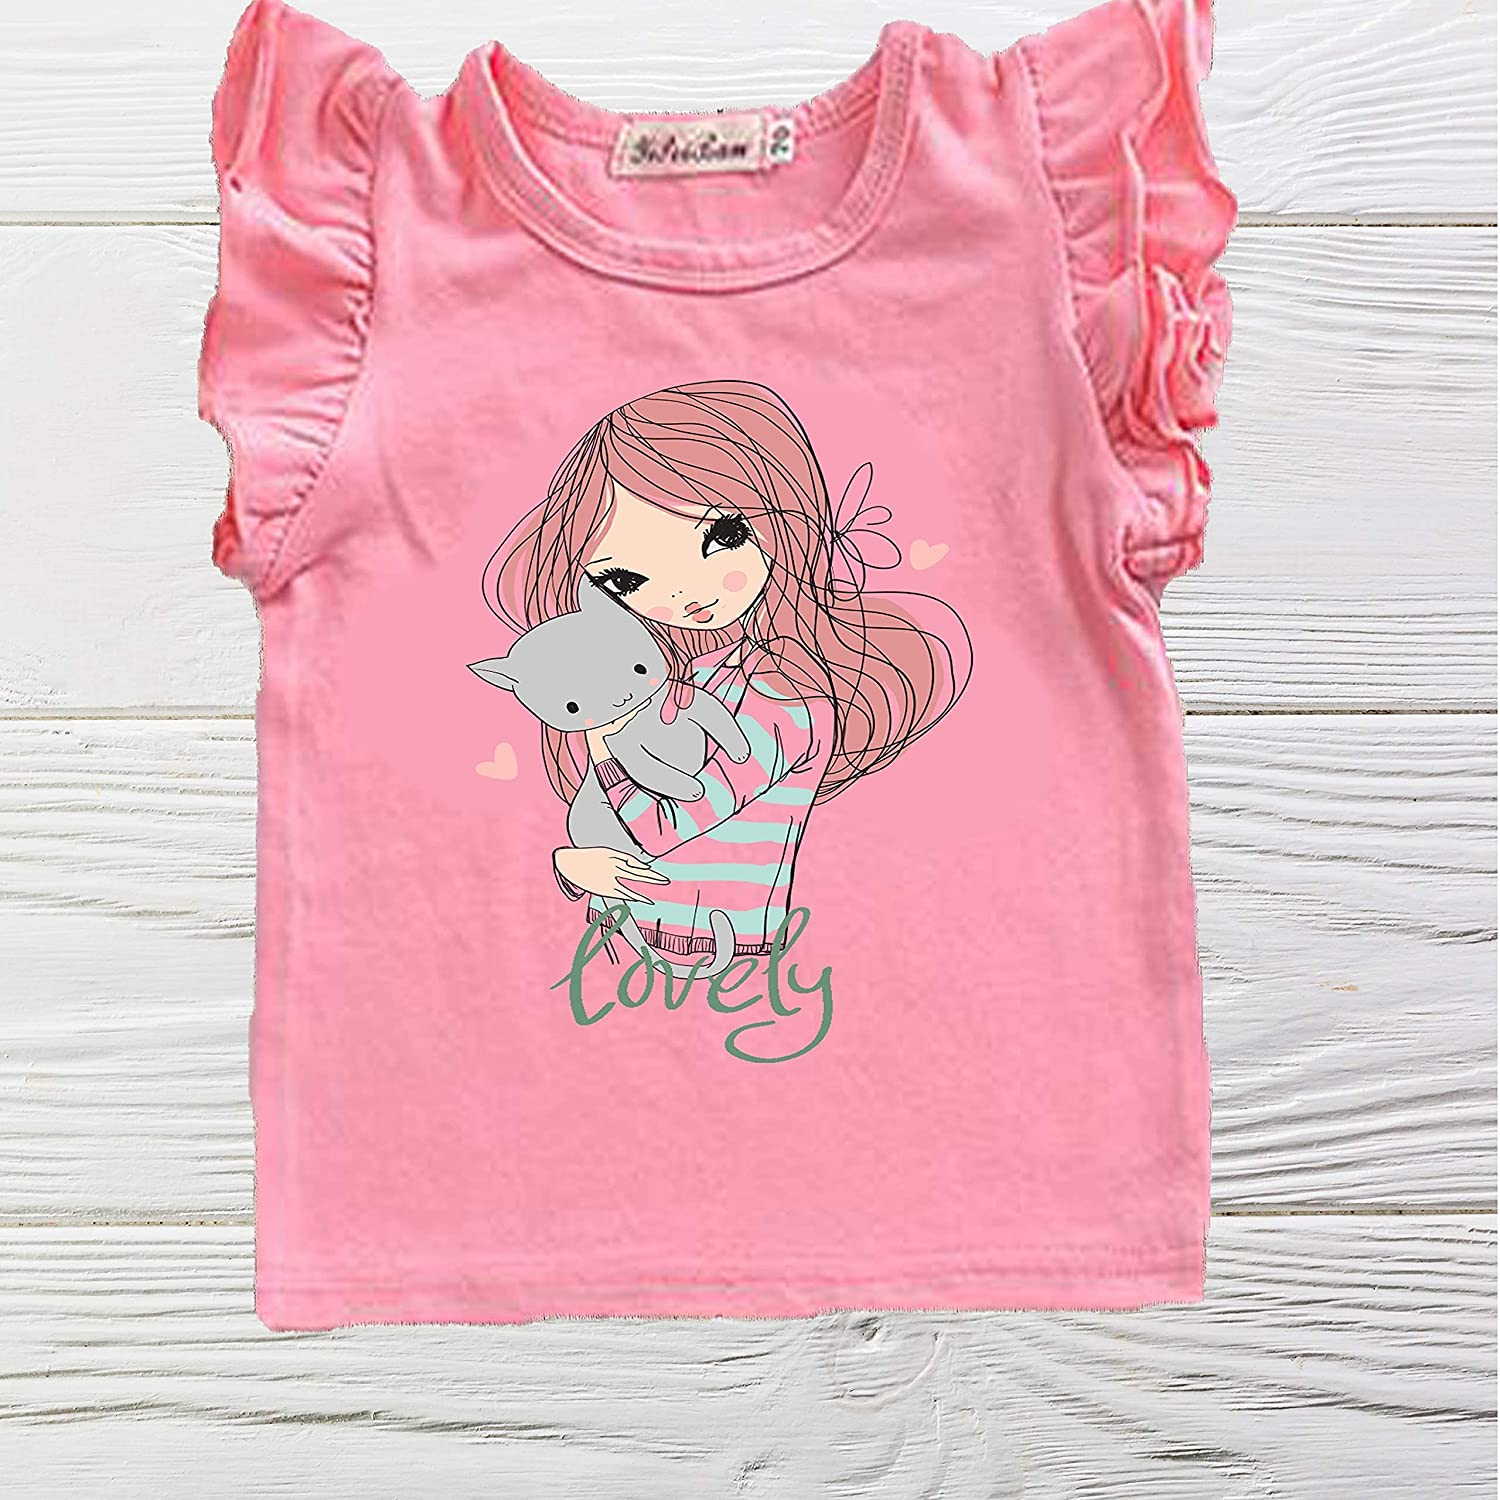 Love Max 61% OFF my Cat shirt - shirts Pink New Orleans Mall Sleev girl Ruffle